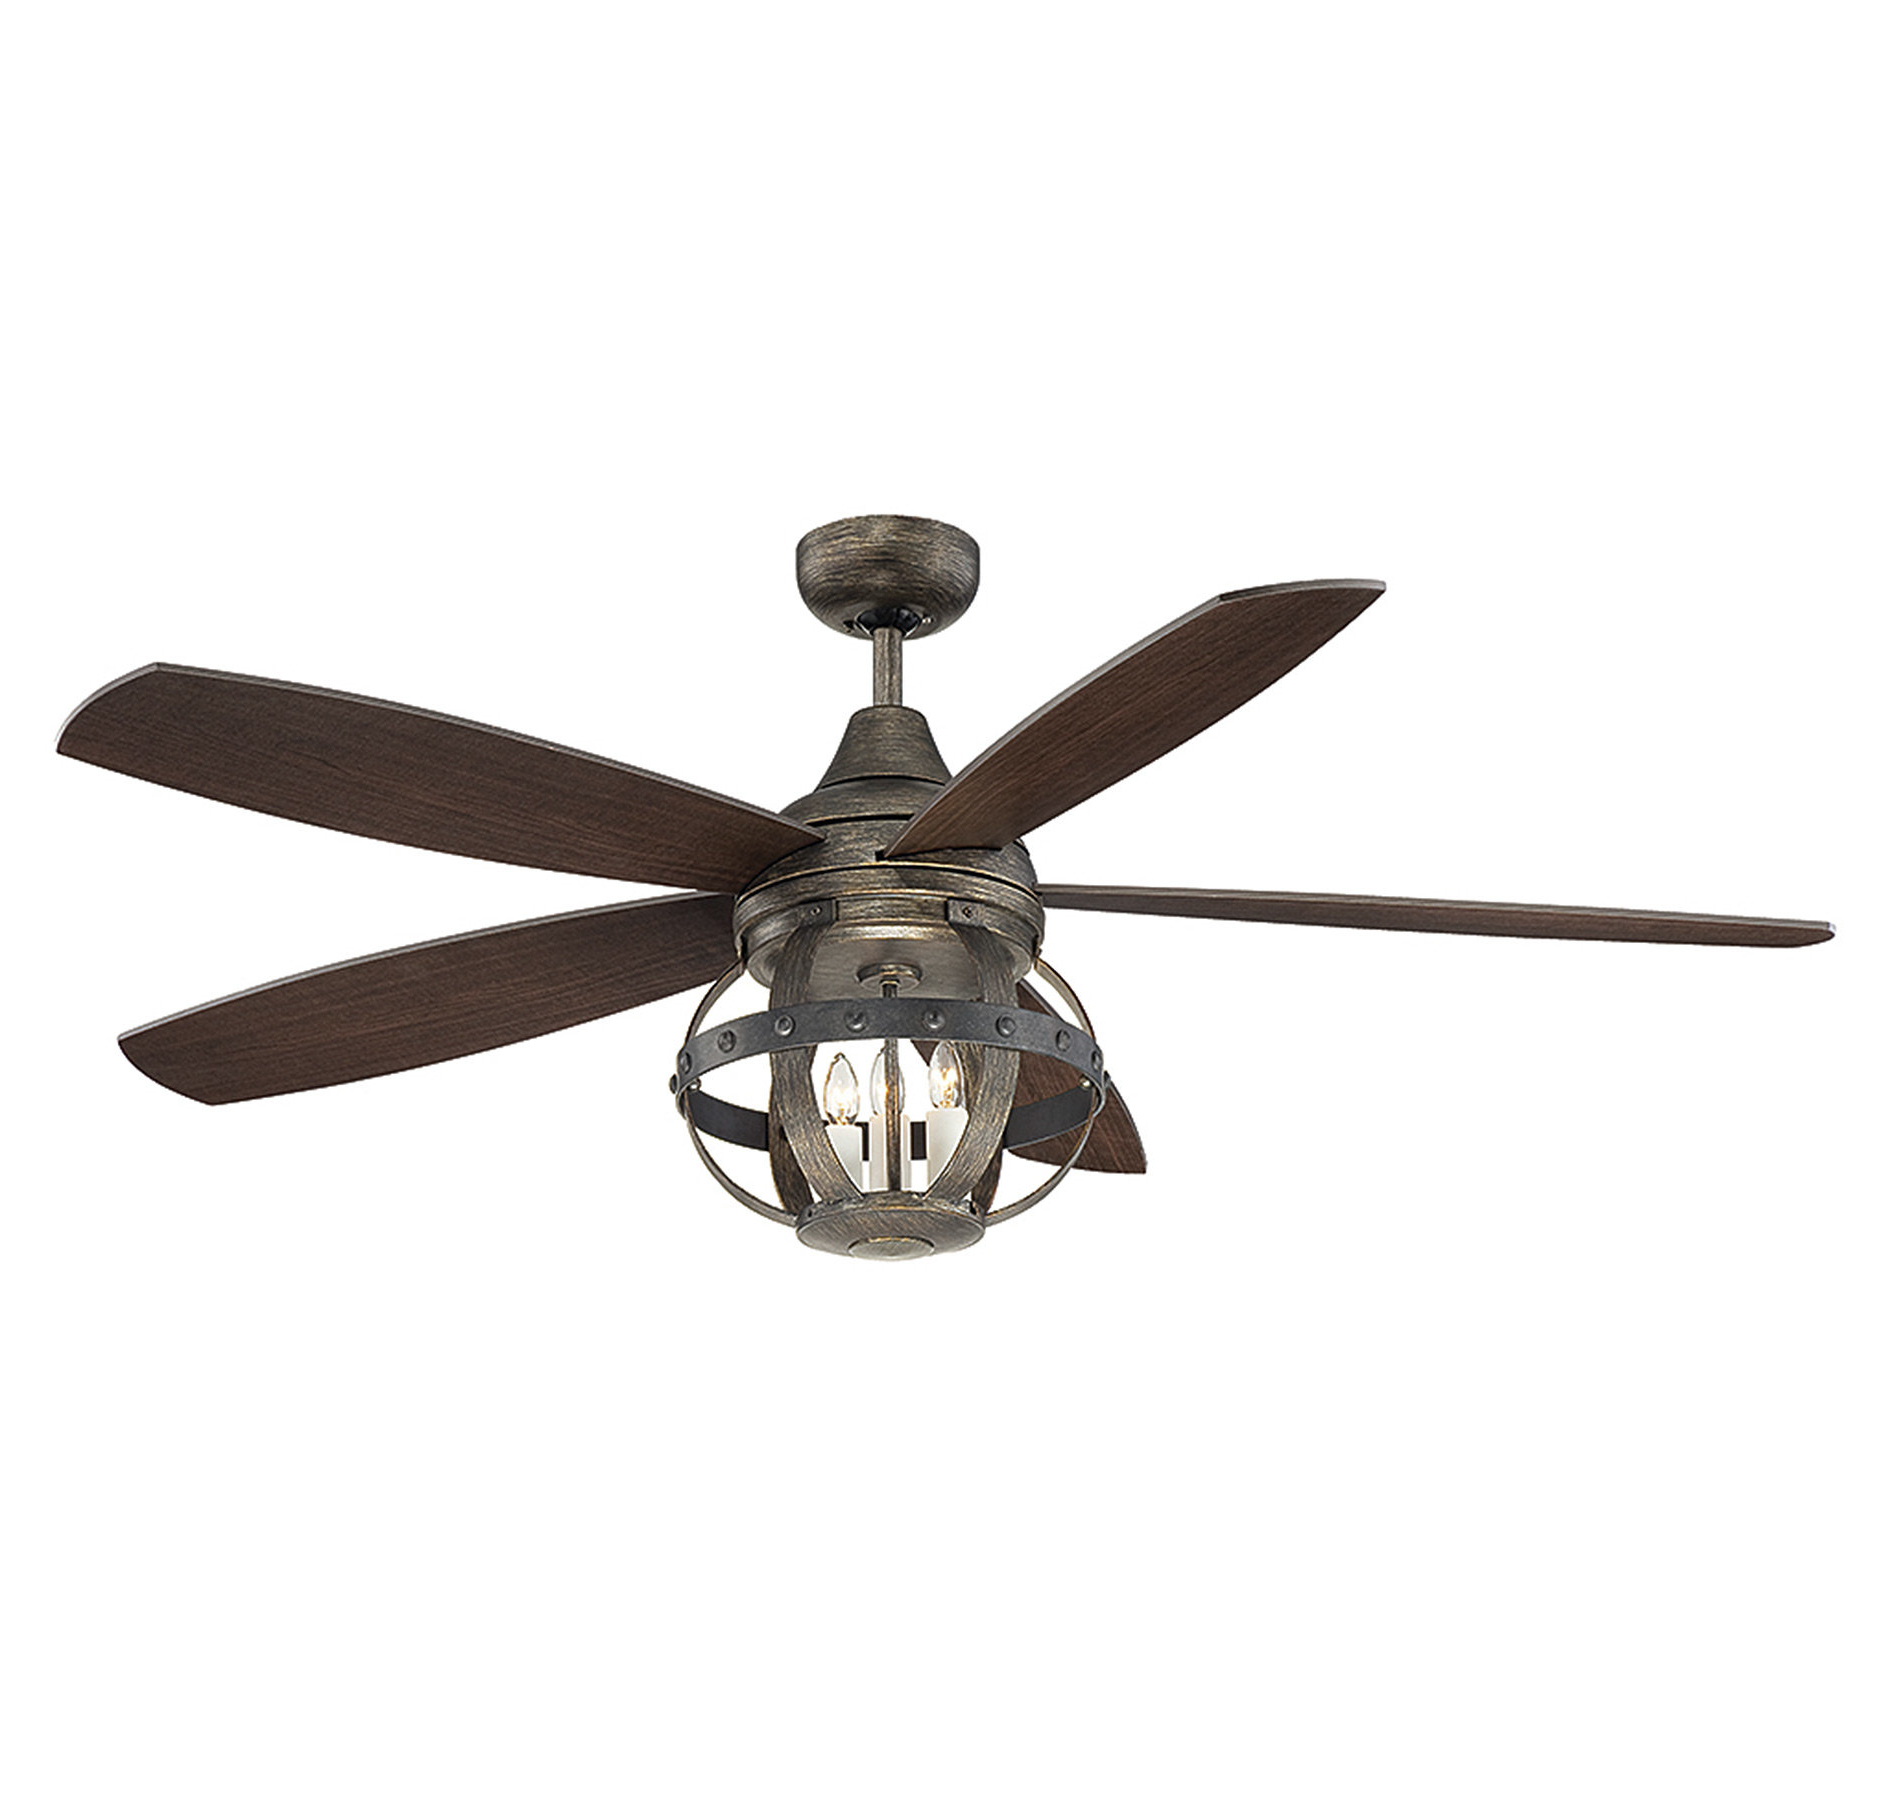 "Wilburton 3 Blade Outdoor Ceiling Fans With Most Current 52"" Wilburton 5 Blade Ceiling Fan With Remote, Light Kit Included (View 4 of 20)"